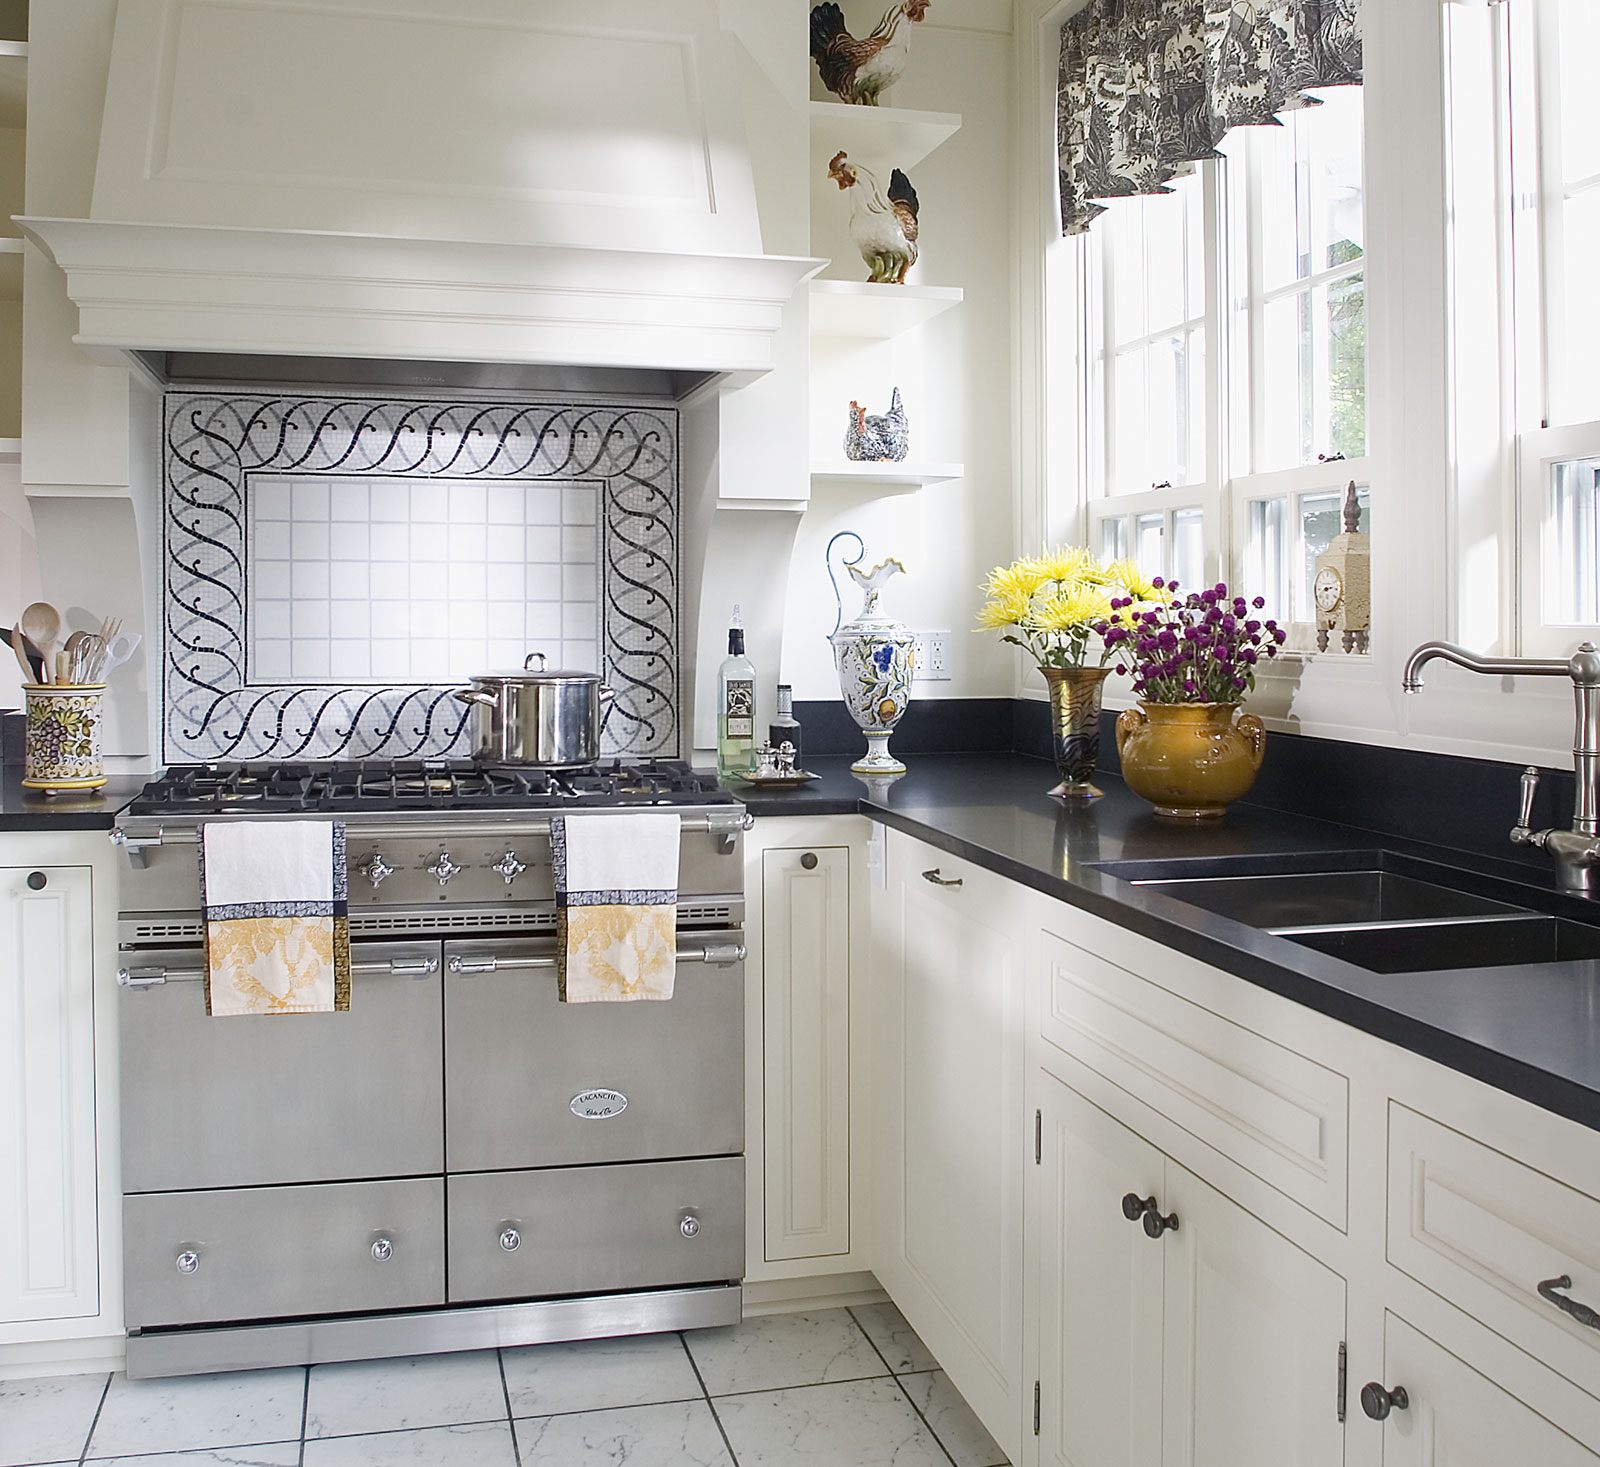 Cluny Cooking Range - Art Culinaire - Lacanche USA